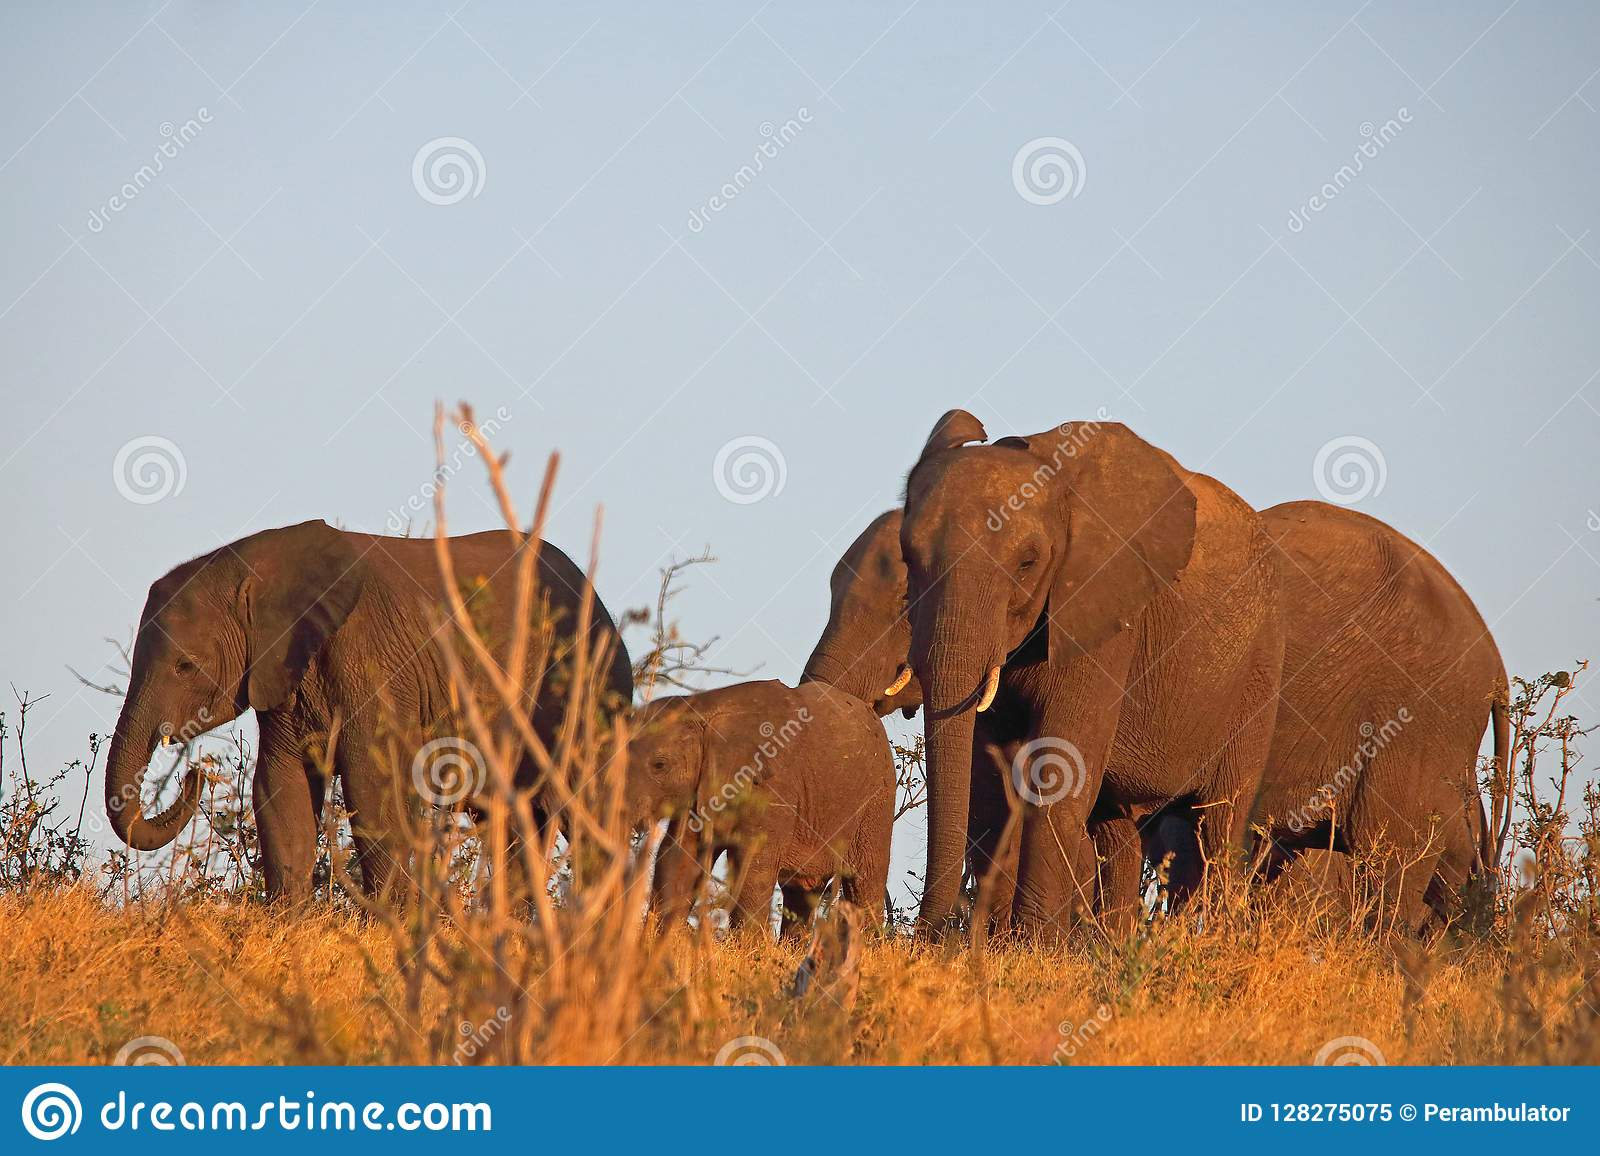 A HERD OF AFRICAN ELEPHANT ON A RIDGE IN THE LATE AFTERNOON SUN